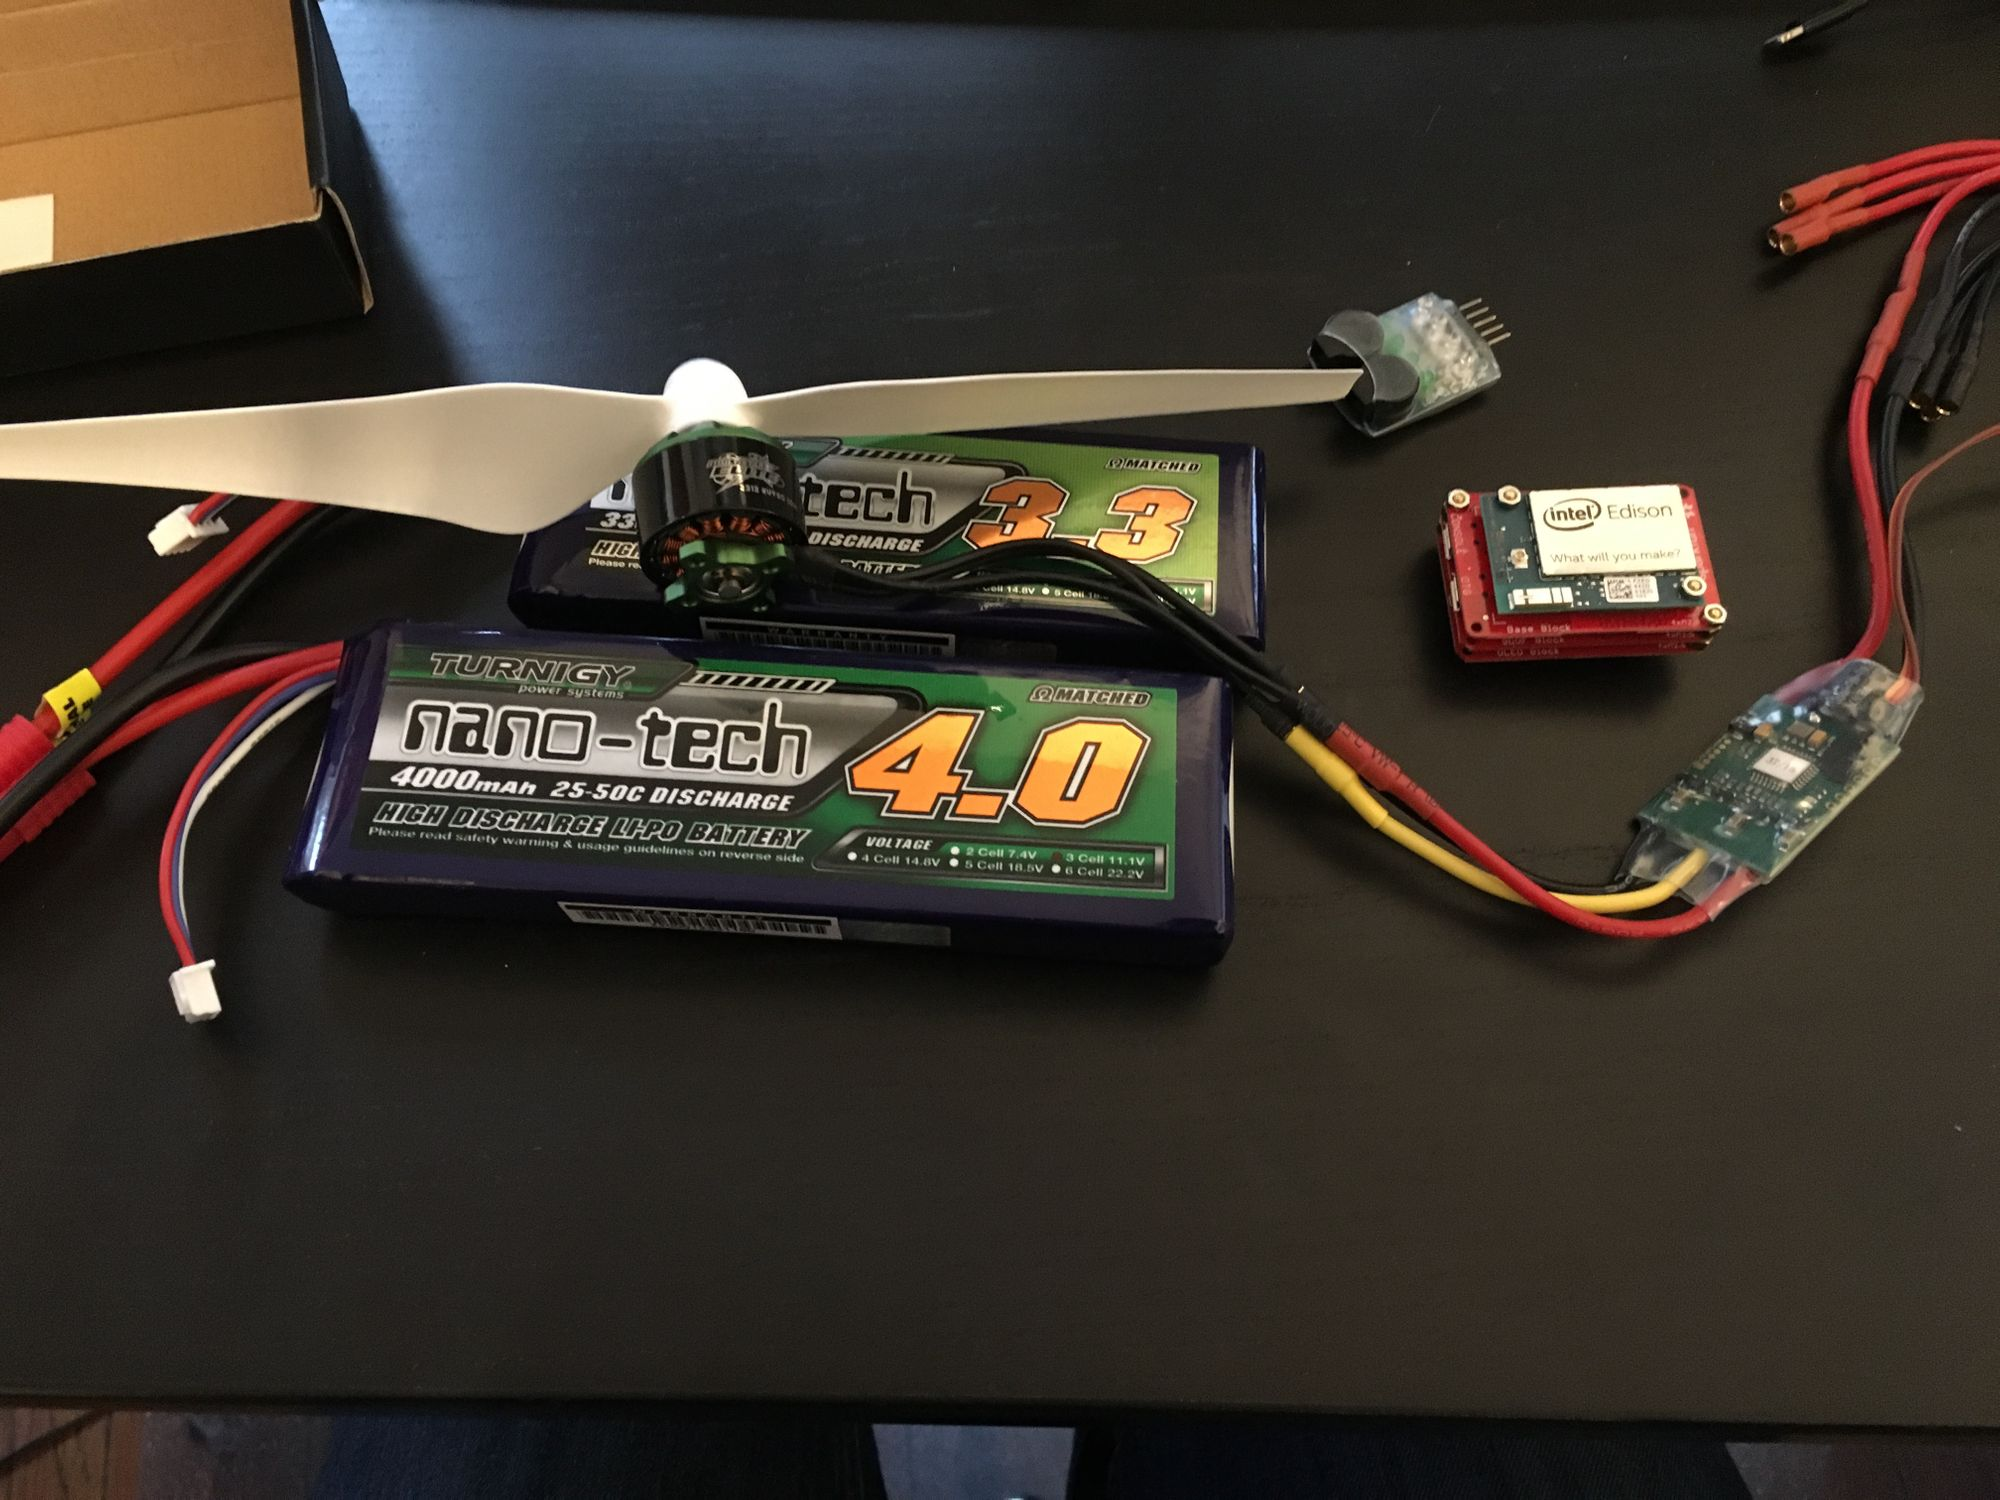 Building a Quadcopter - Part 1: General idea and selecting parts